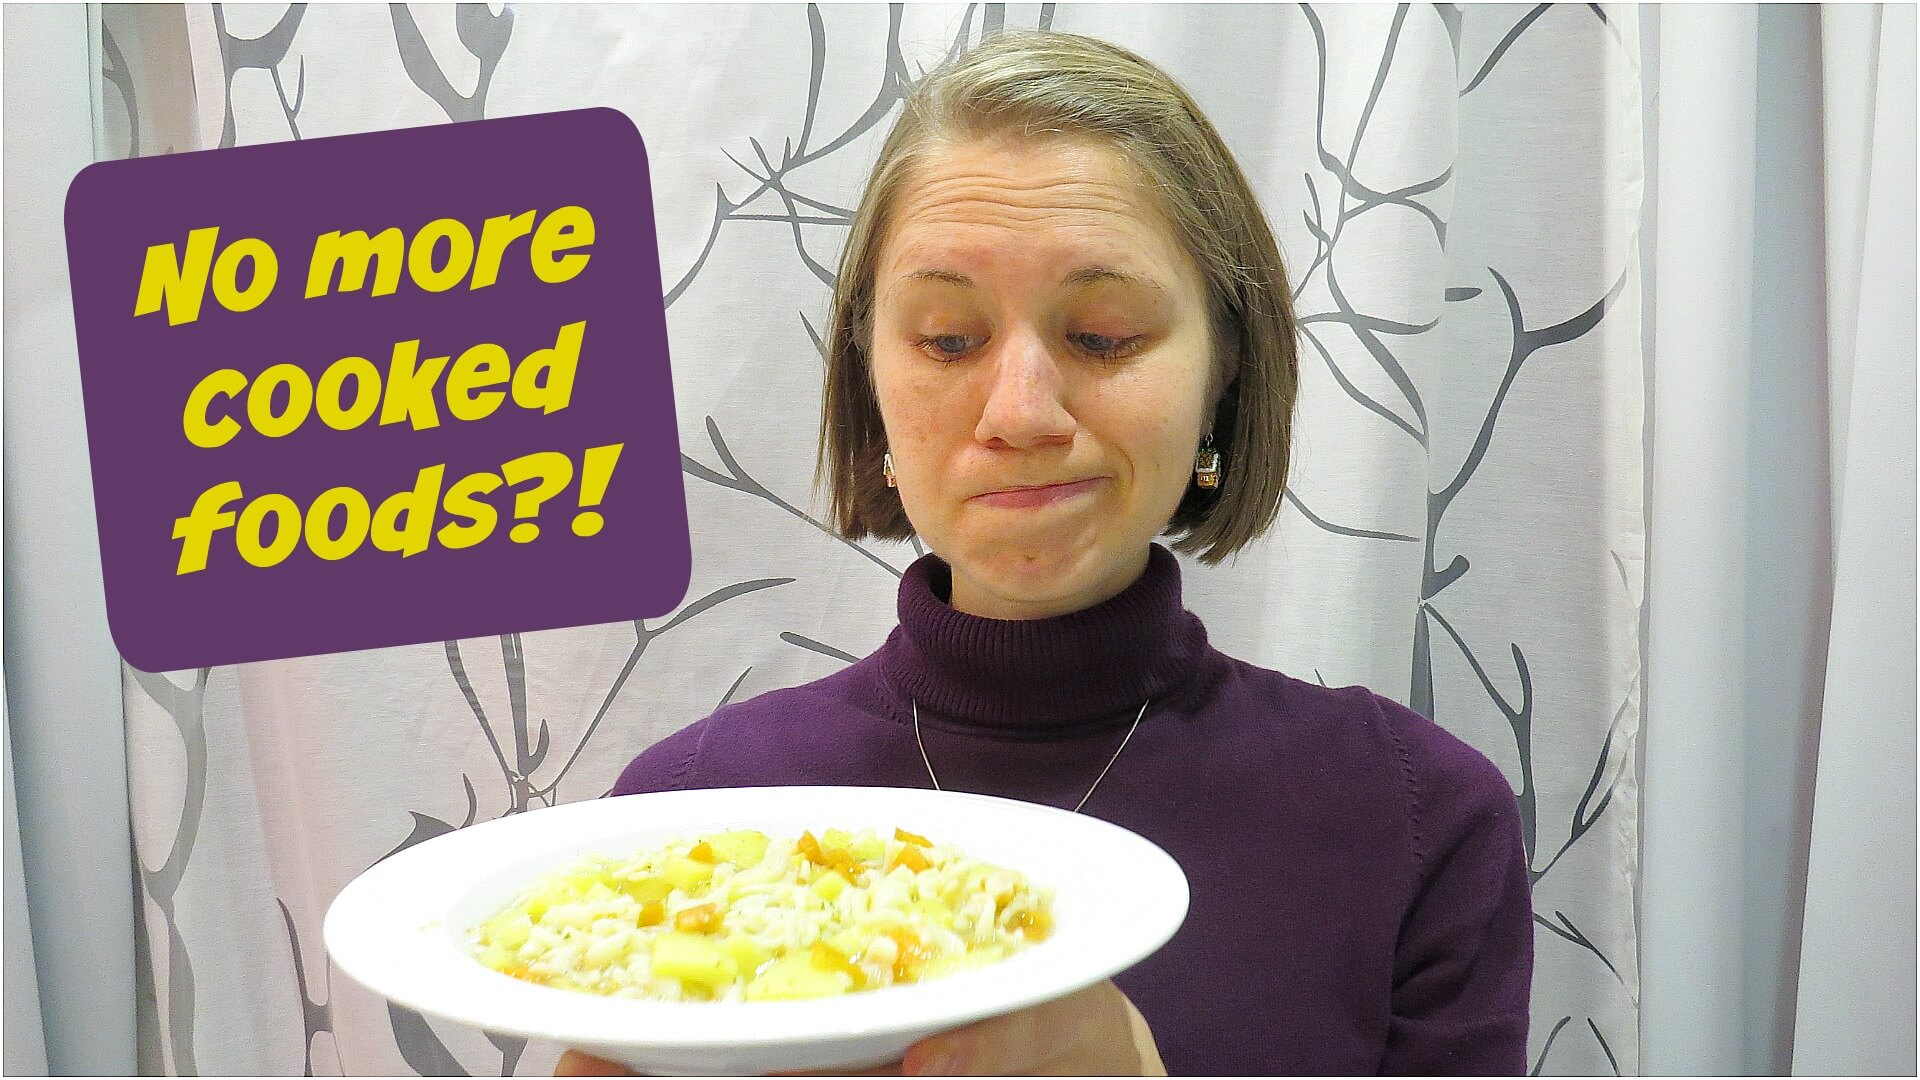 I can't eat cooked food anymore!